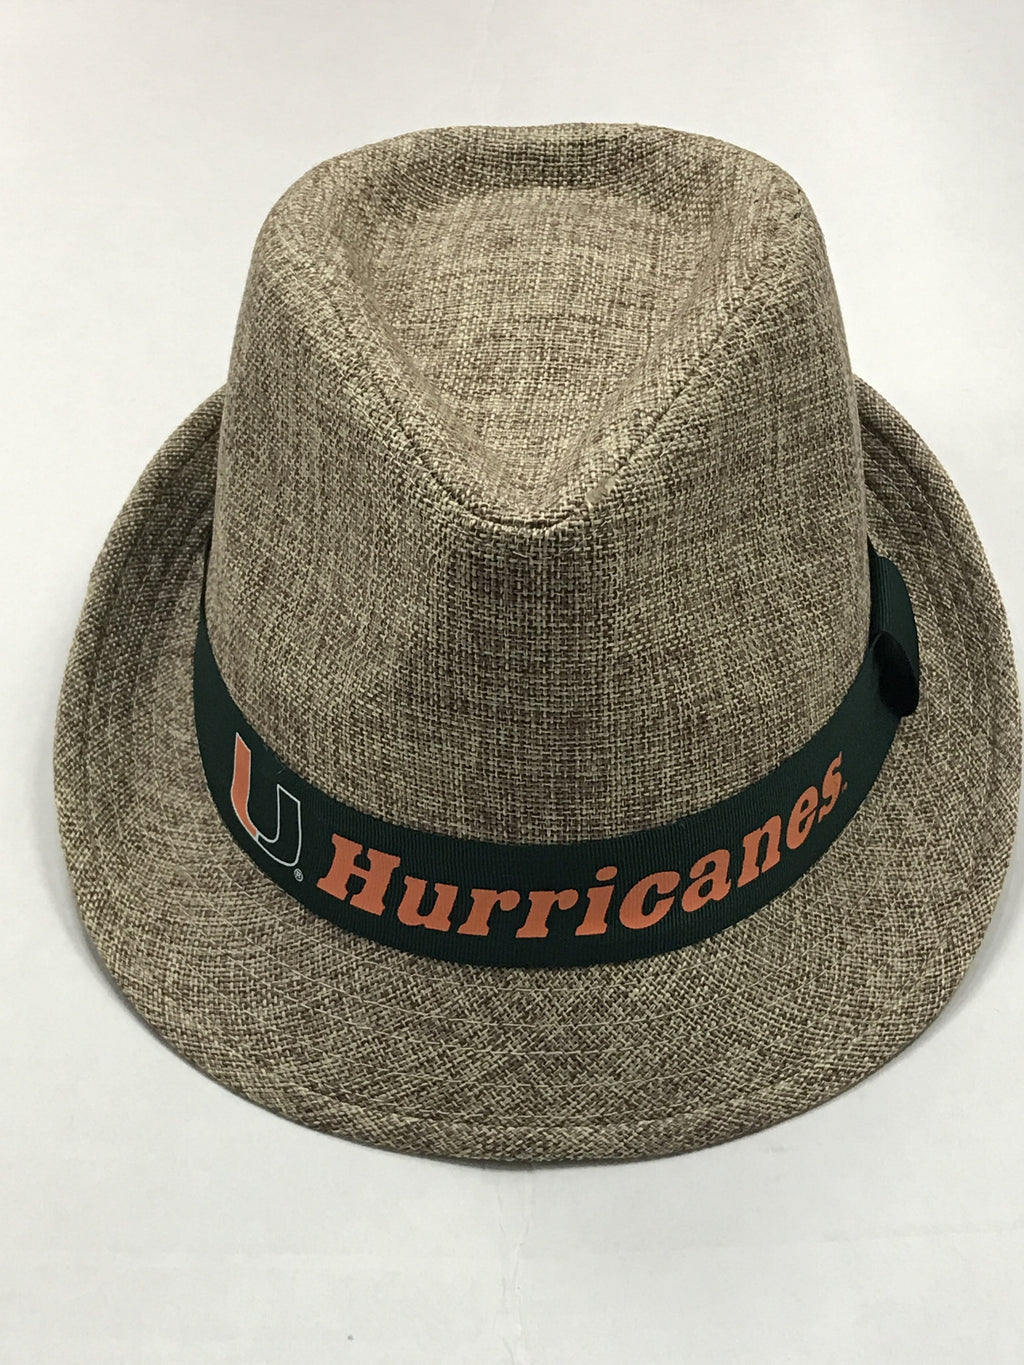 Miami Hurricanes Top of the World First Class Fedora Hat